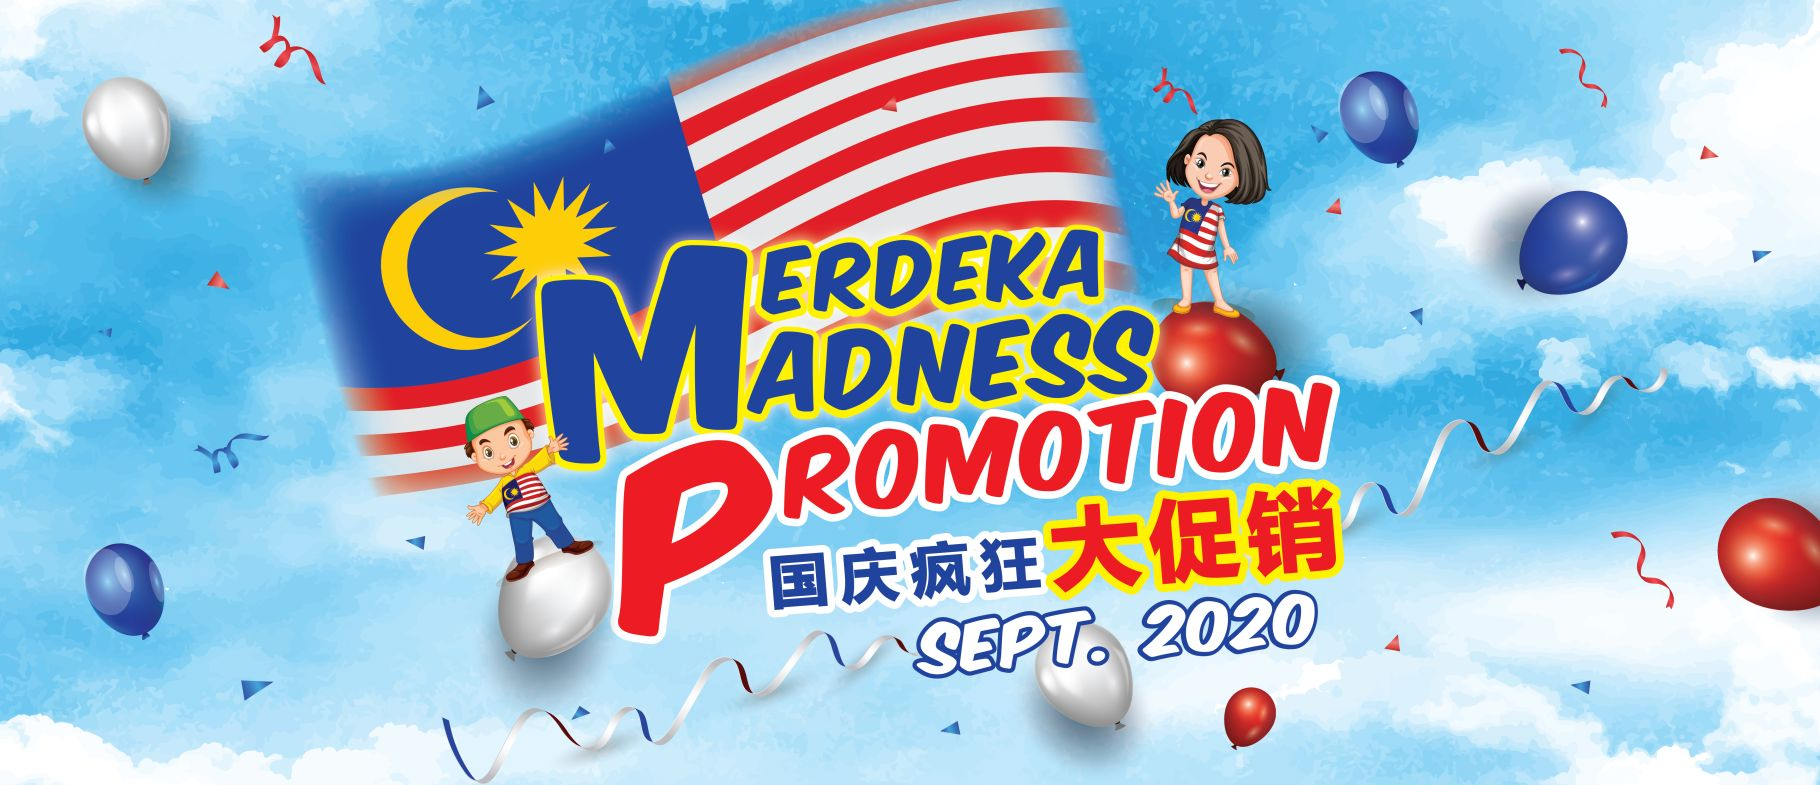 Merdeka Madeness Promotion SEP